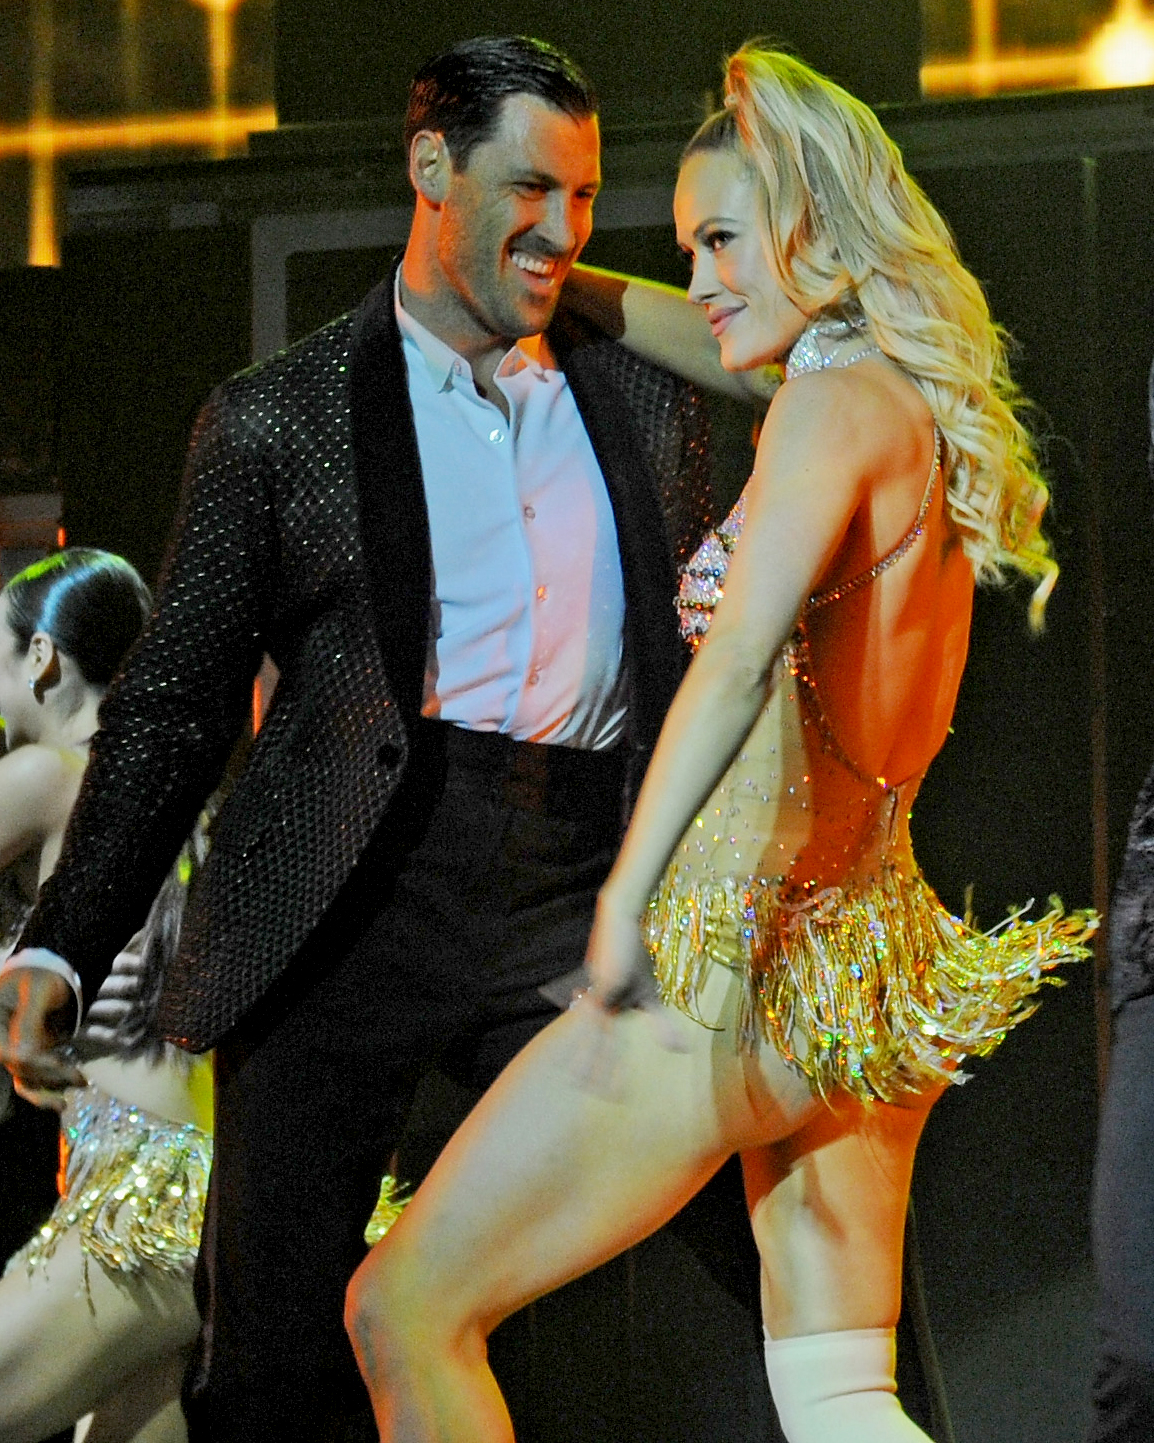 Who Is Max From Dancing With The Stars Dating Now